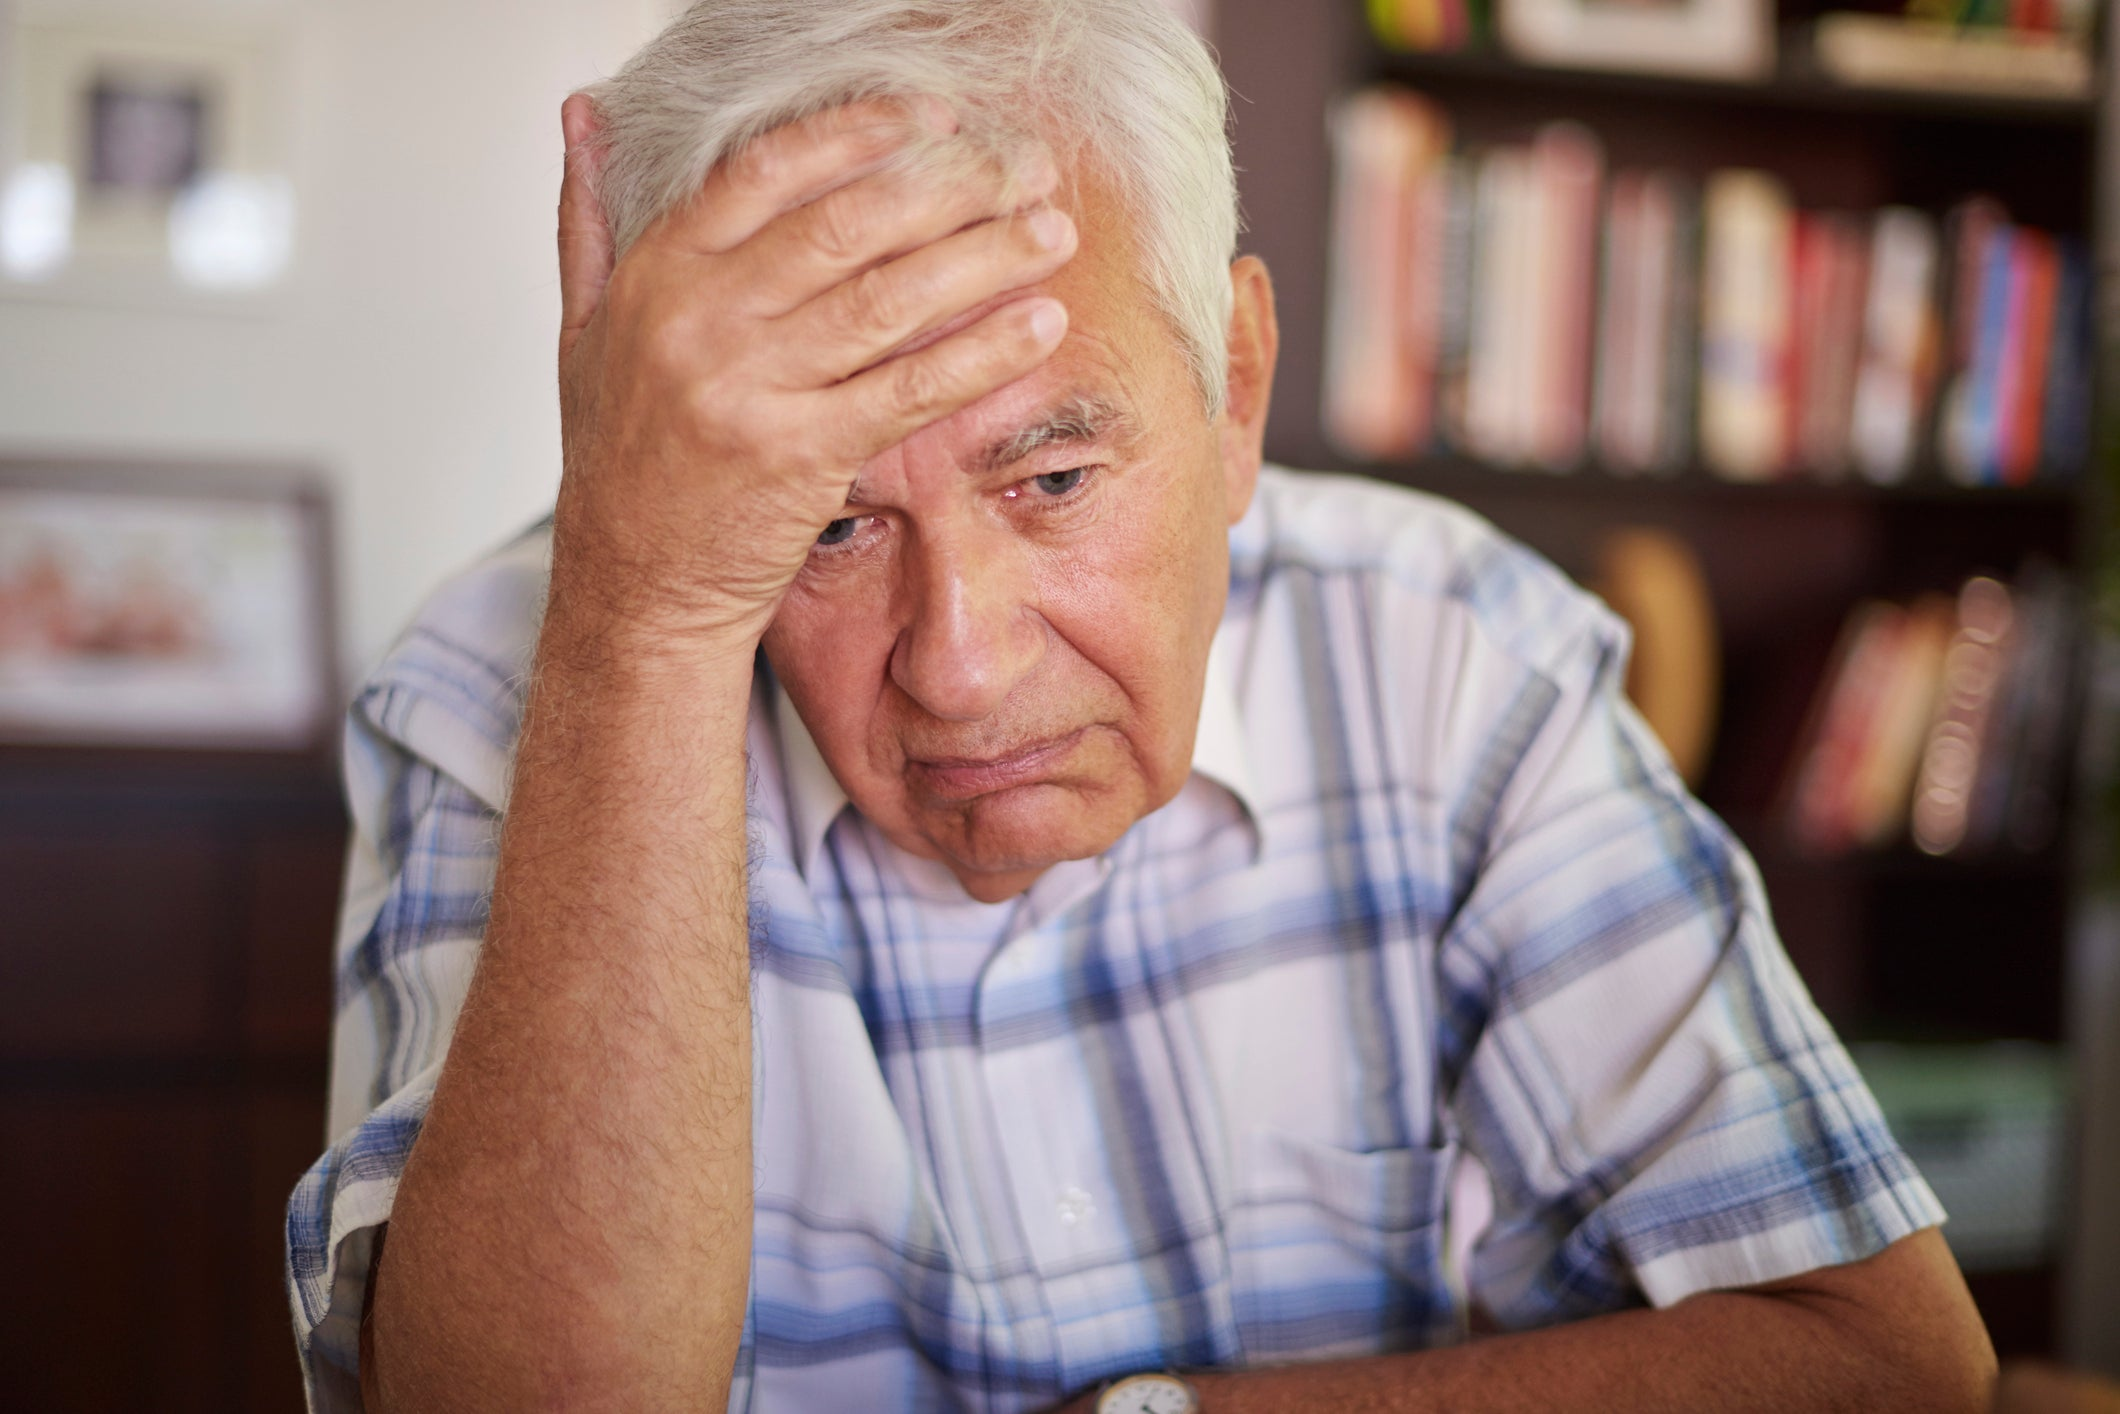 3 Retirement Mistakes That Will Make You Miserable | The Motley Fool